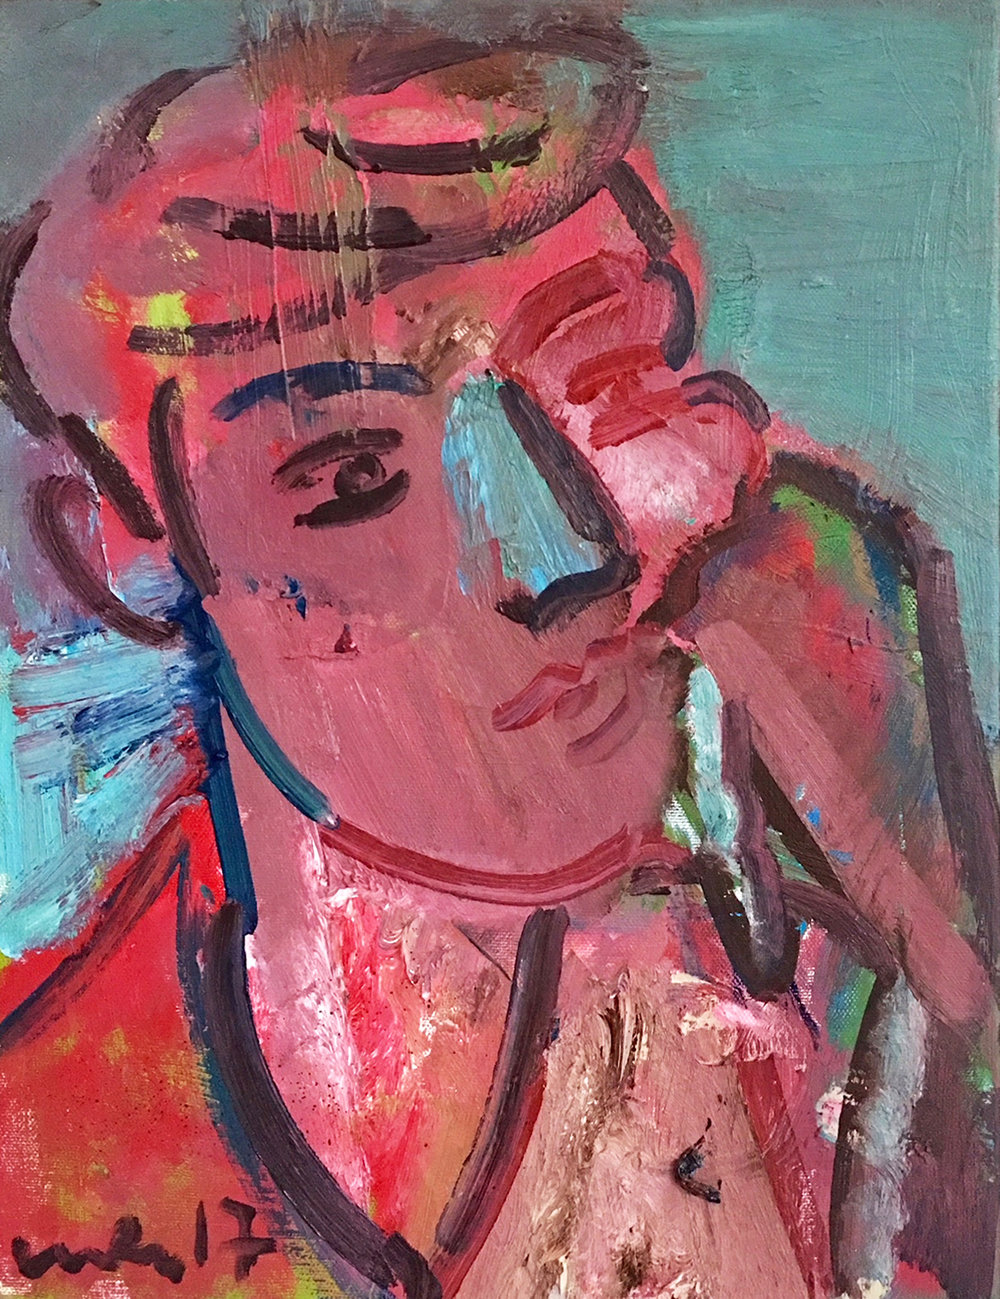 Title: Portrait of Billy  Size: 61 x 46 cm  Medium: Oil on canvas  Price: £1450